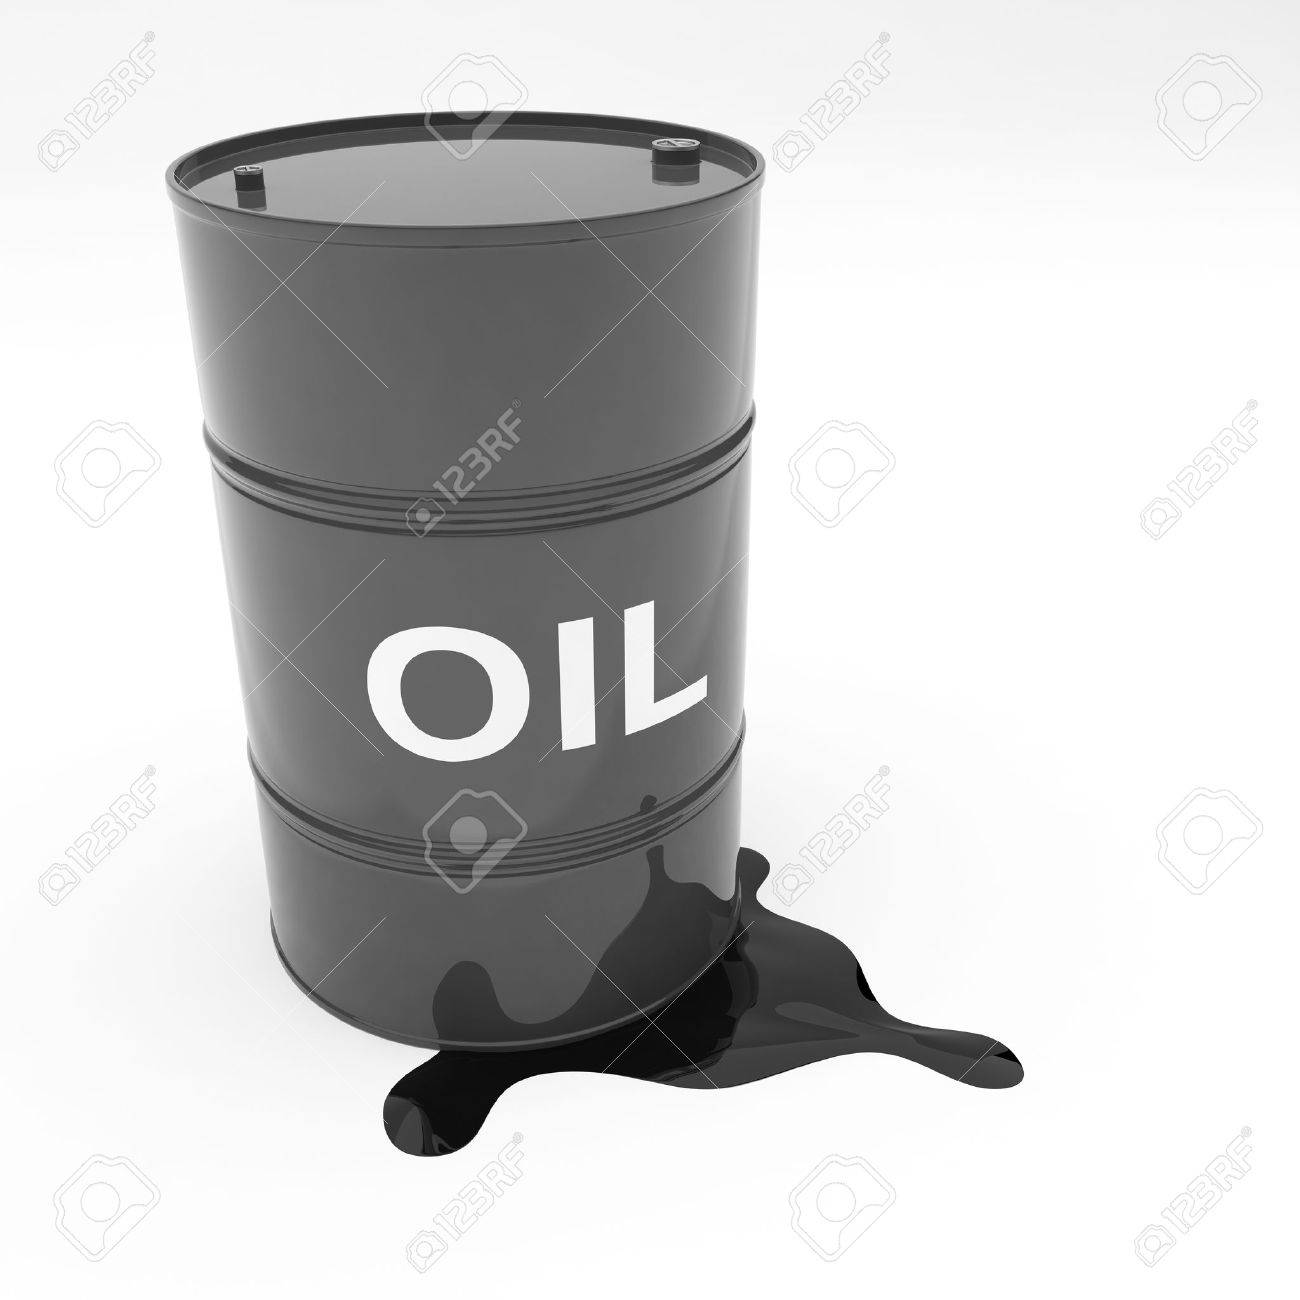 Steel 55 gallon oil drum black in color leaking contents Stock Photo - 9670397